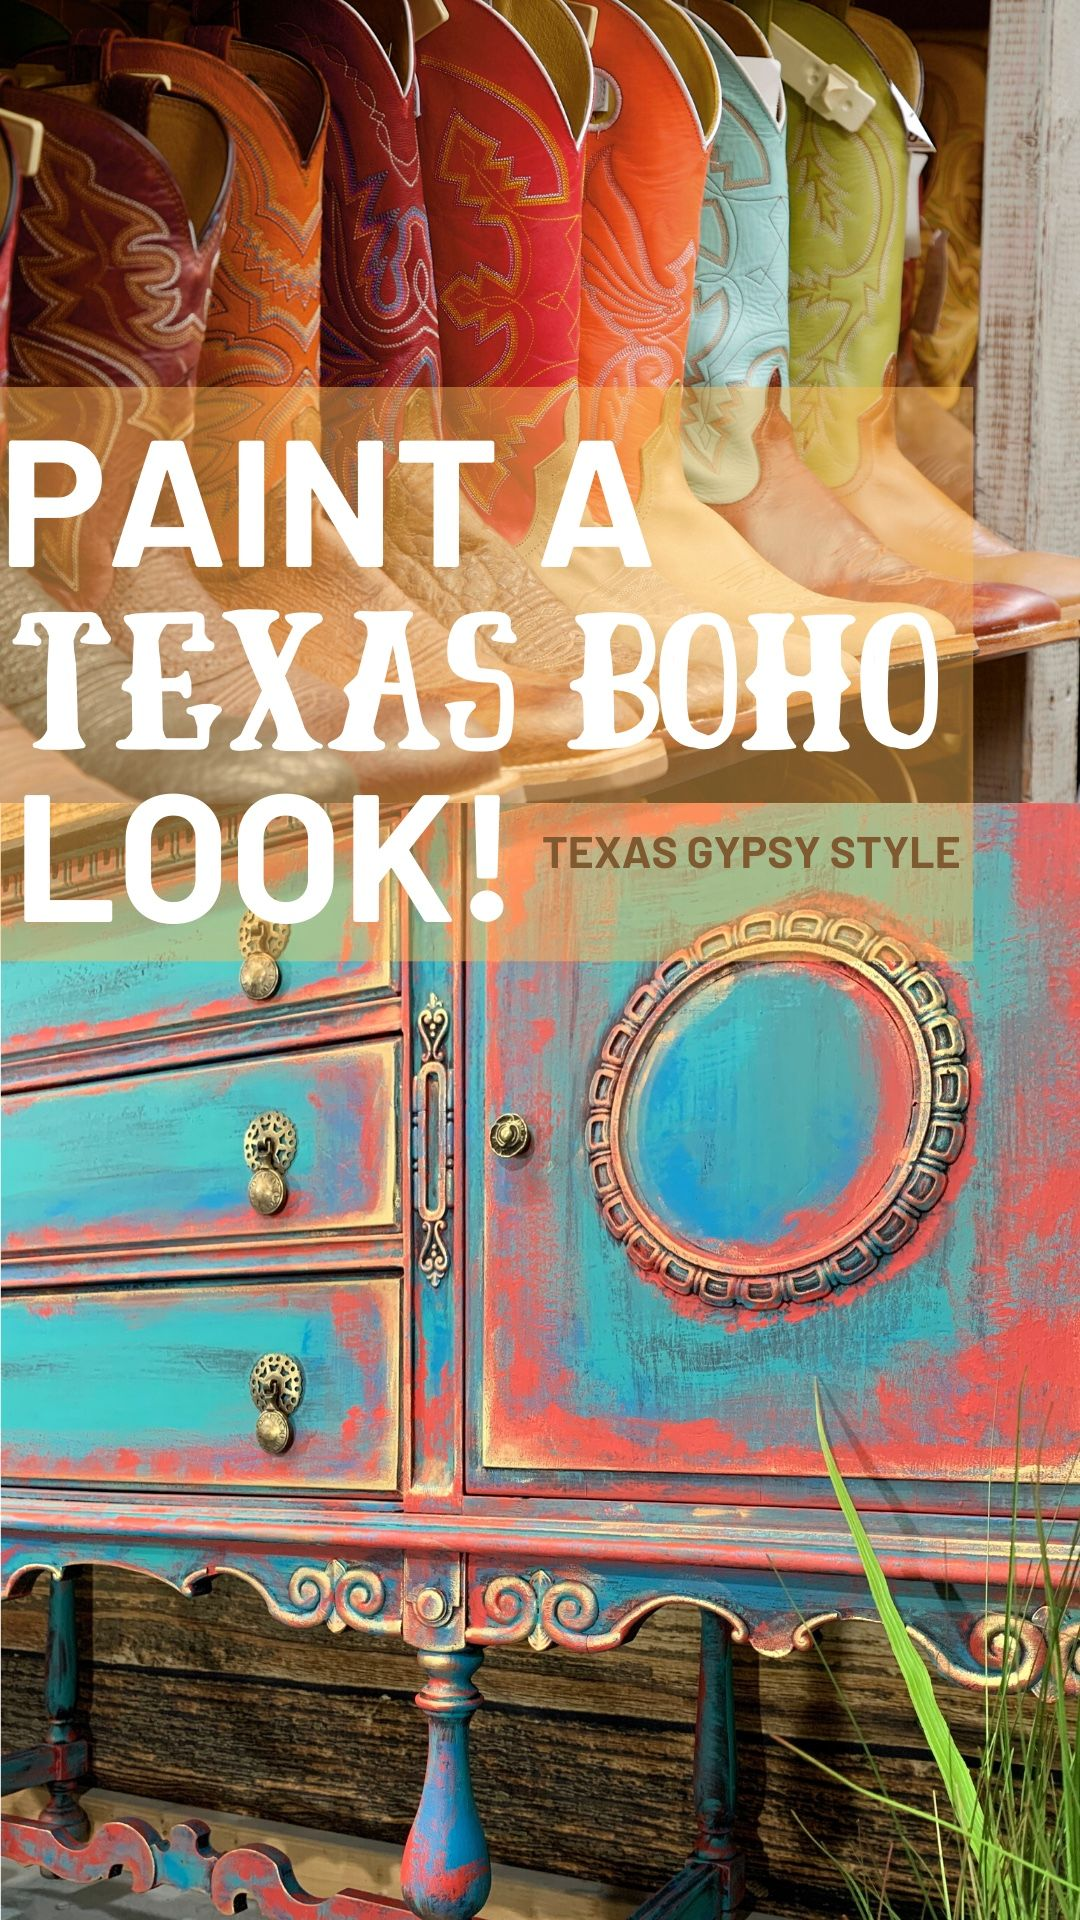 Subscribe, Watch & Learn on Texas Gypsy Style YouTube Channel!  Krista Mulkey, Furniture Artist & Creator of Texas Gypsy Style painting technique.  #colorfulfurniture #paintedfurniture #furniturepainting #bohopaintedfurniture #texasgypsystyle #paintingtechnique #furniturepaintingtutorial #diypaintedfurniture #diyfurniture #dixiebellepaint #chalkpaintedfurniture #chalk painting #bohostyleliving #distressingfurniture #paintedbuffet #furnitureart #furnitureartist #upcylcle